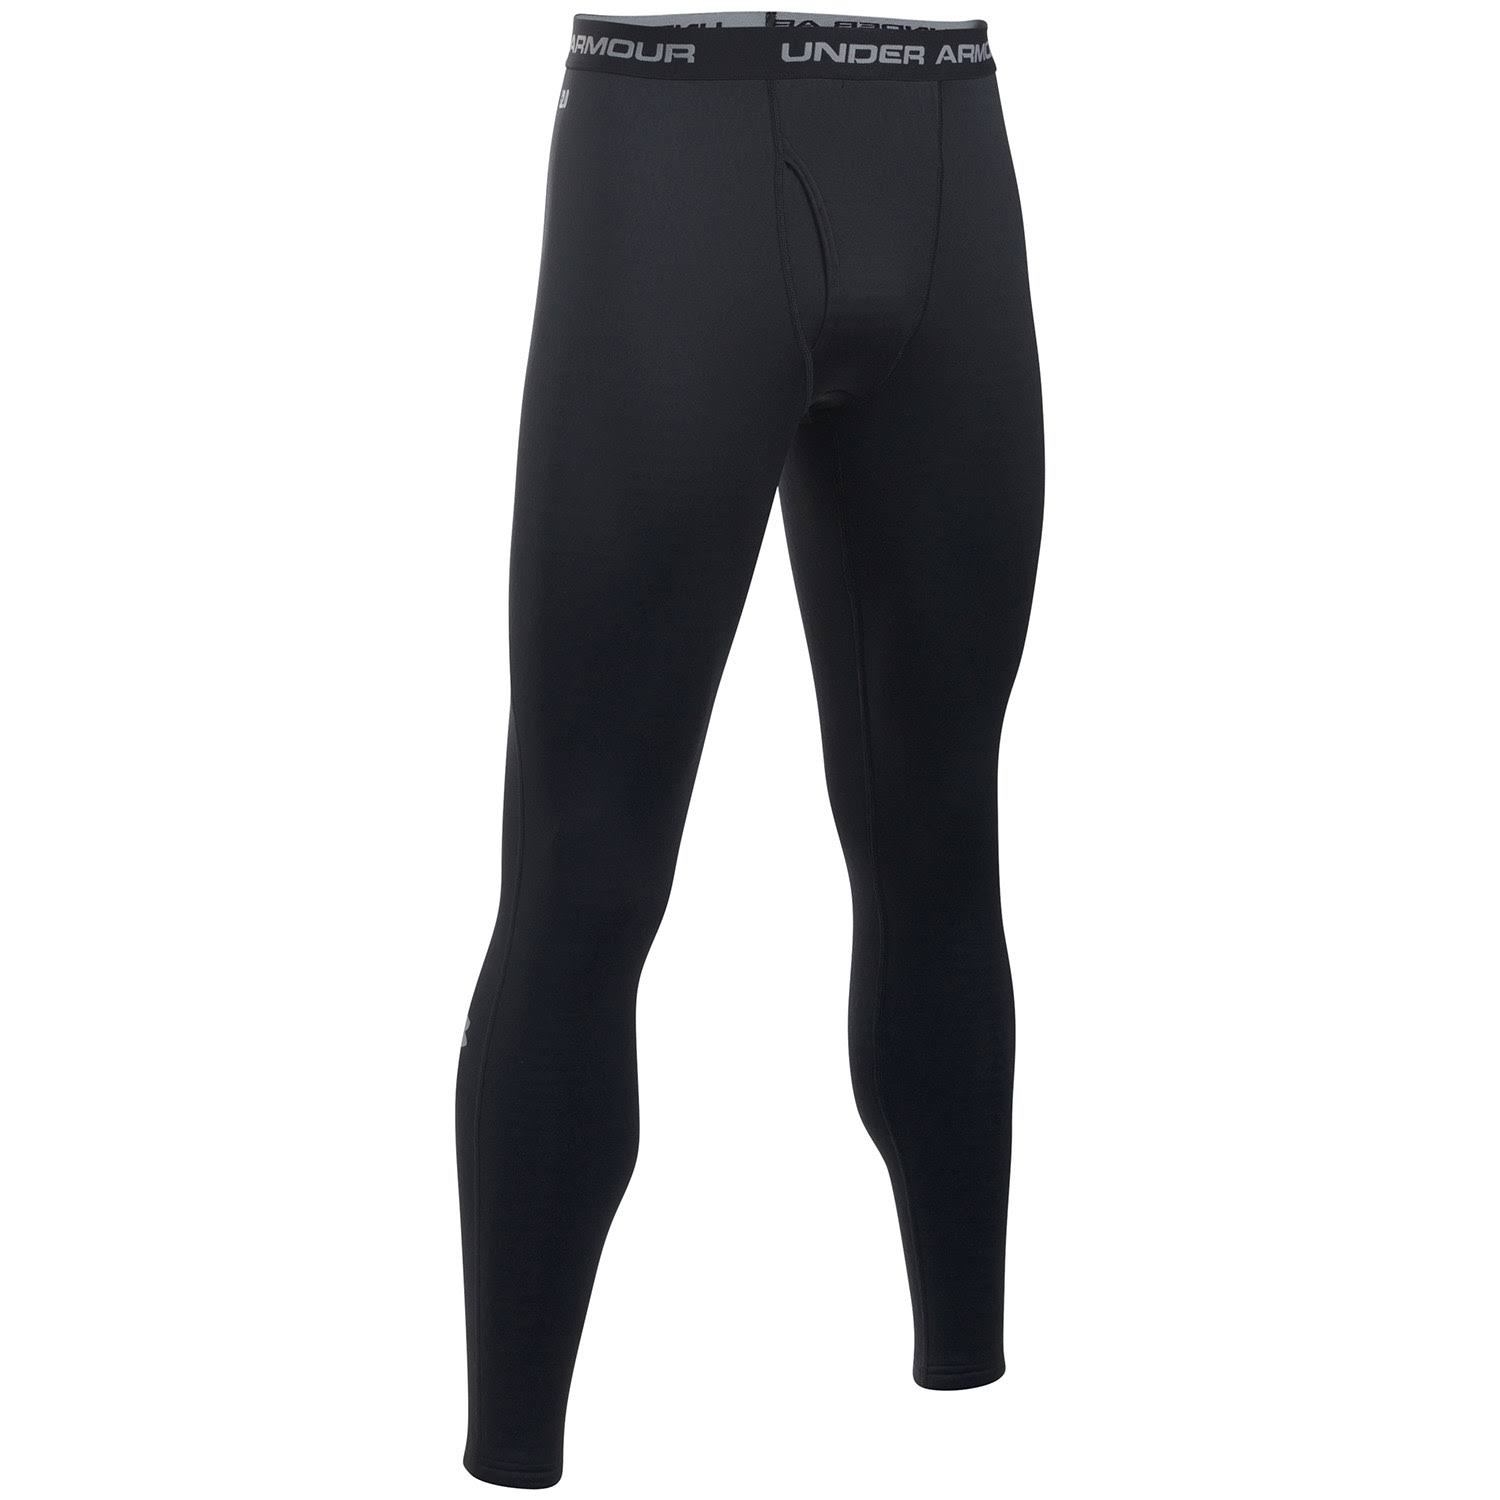 Under Armour Men's Base 2.0 Leggings - Black, Medium